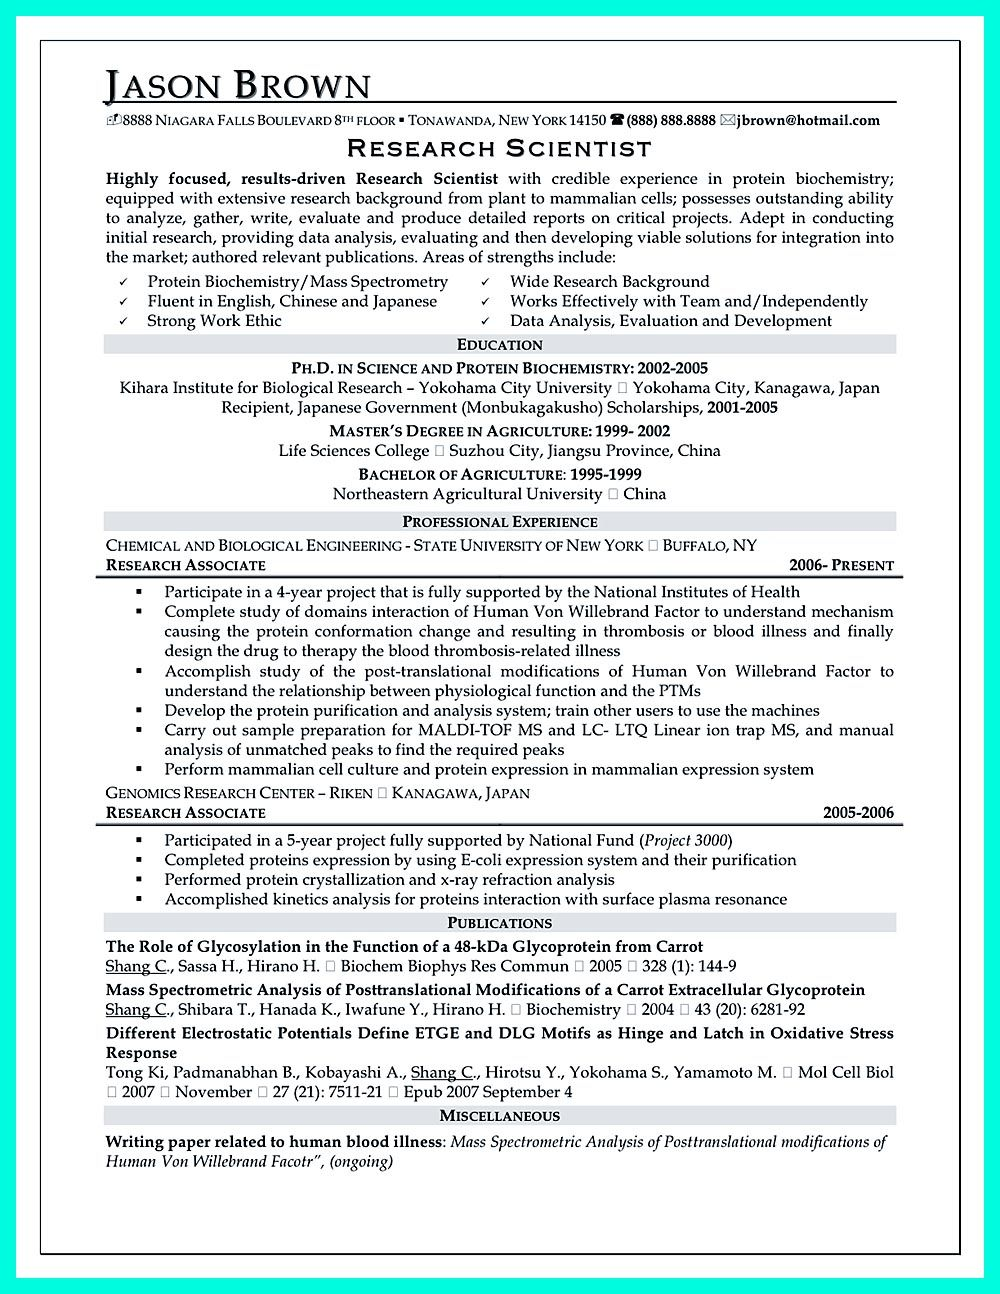 Clinical Research Coordinator Resume Objectives That Are Effective Resume Cover Letter Examples Clinical Research Cover Letter For Resume